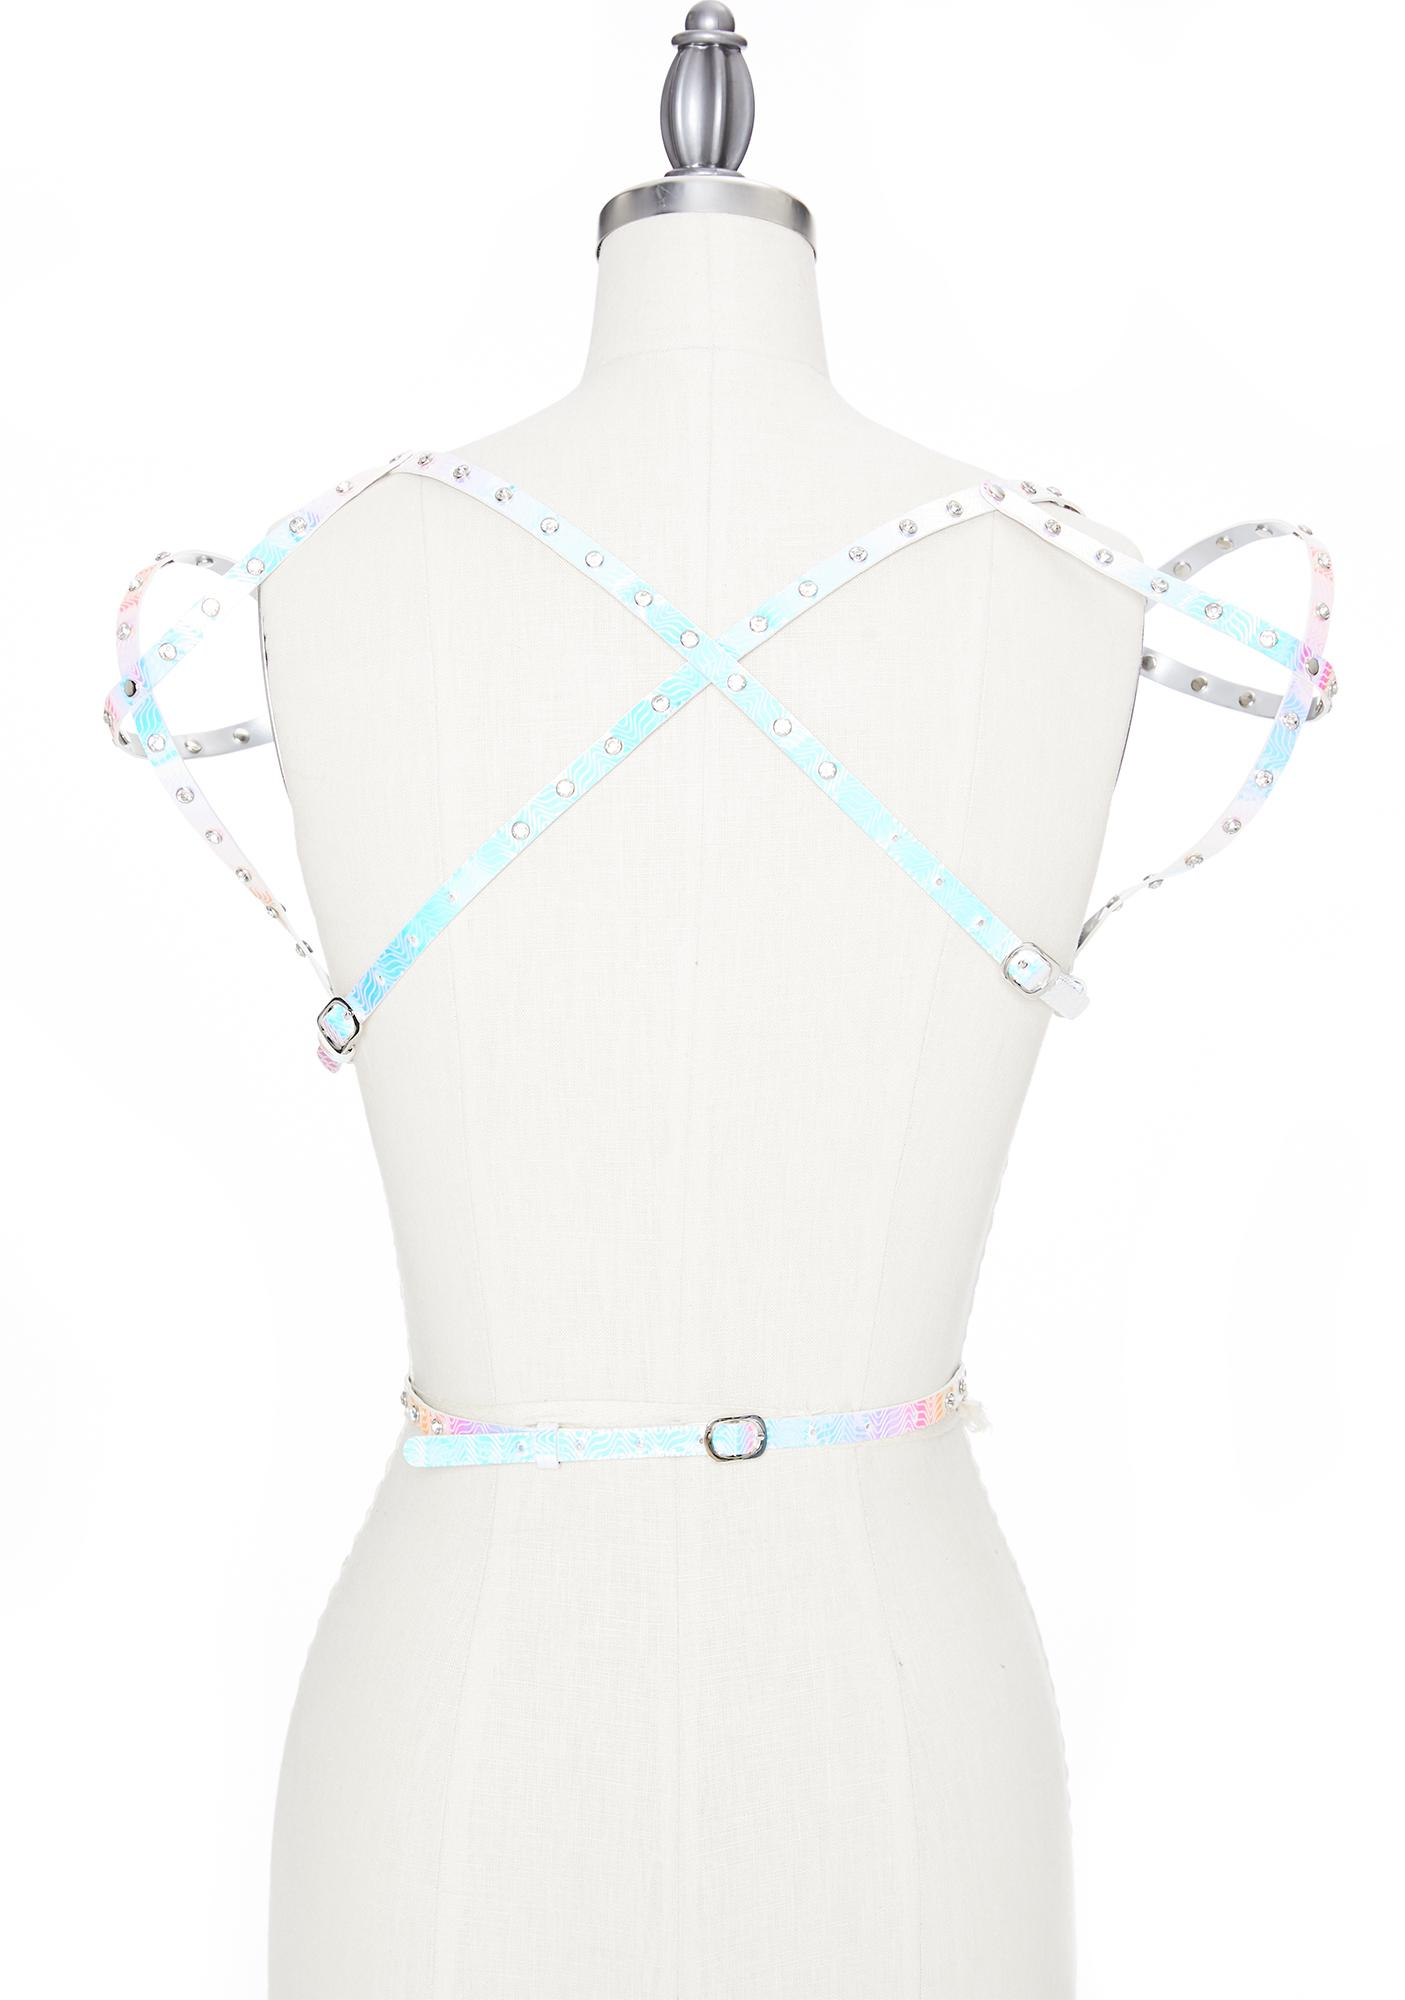 Club Exx Cosmic Warrior Holographic Harness